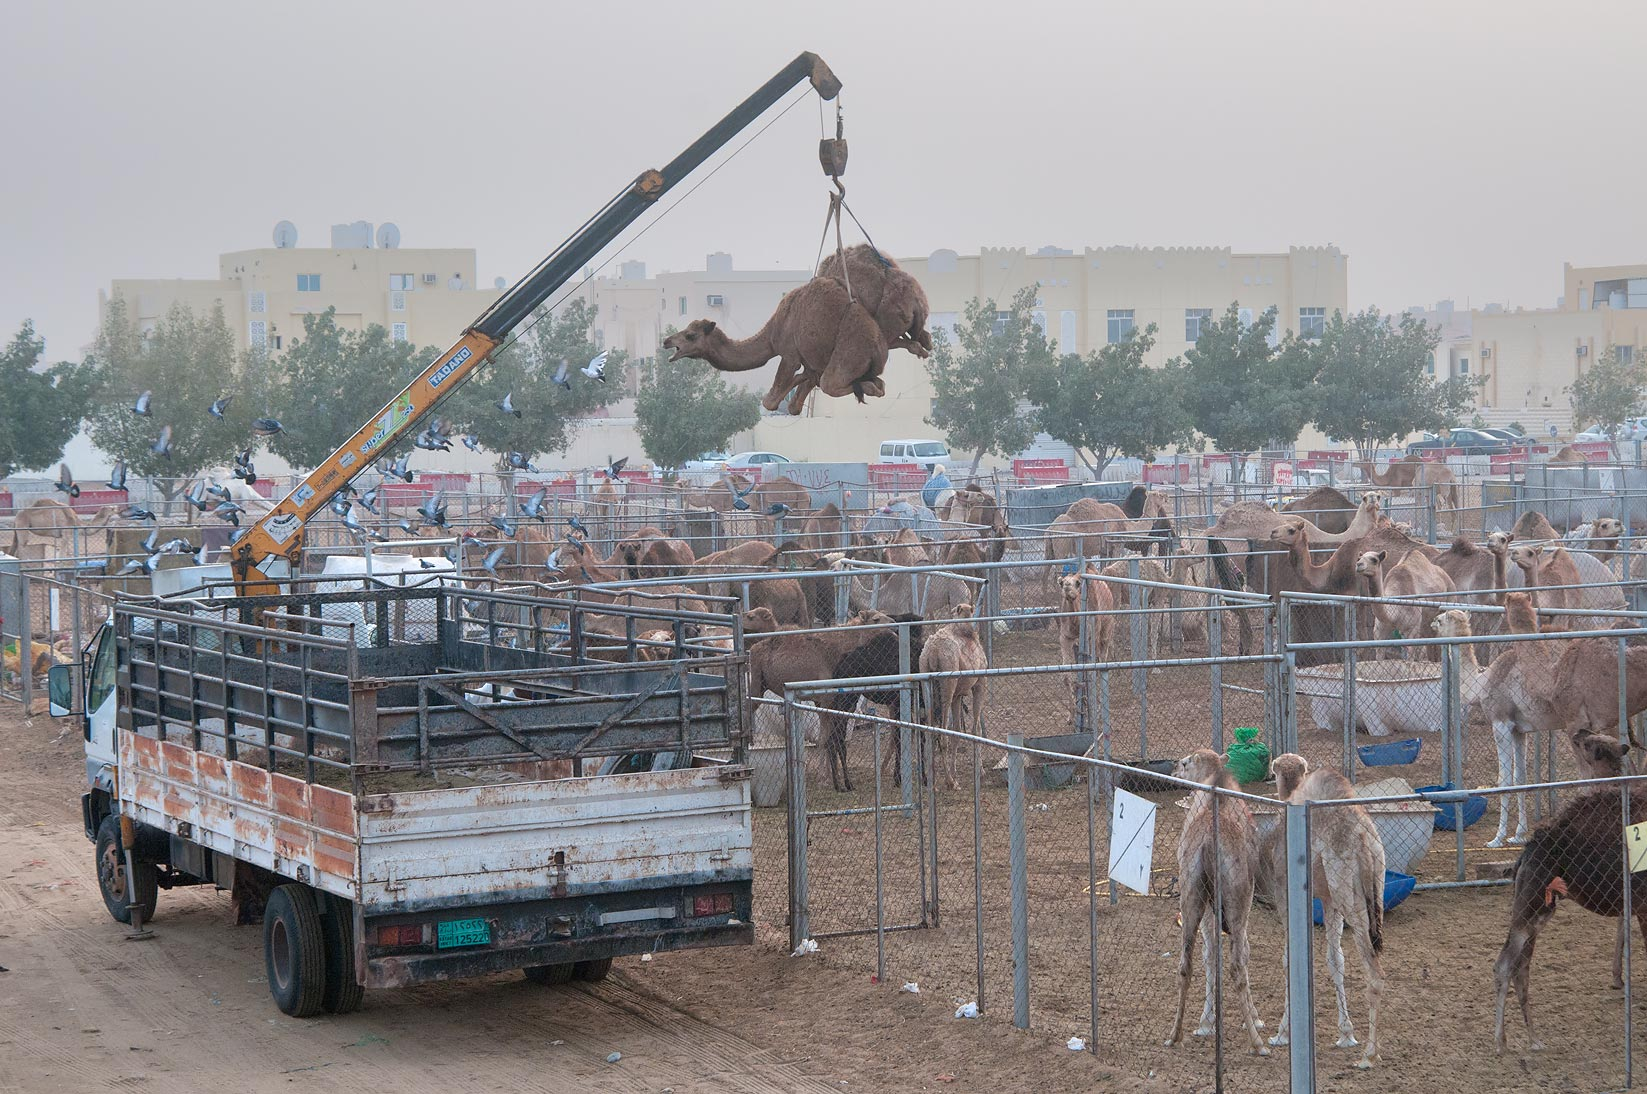 A crane plucking a camel in the air in Camel Souq in Wholesale Markets area. Doha, Qatar